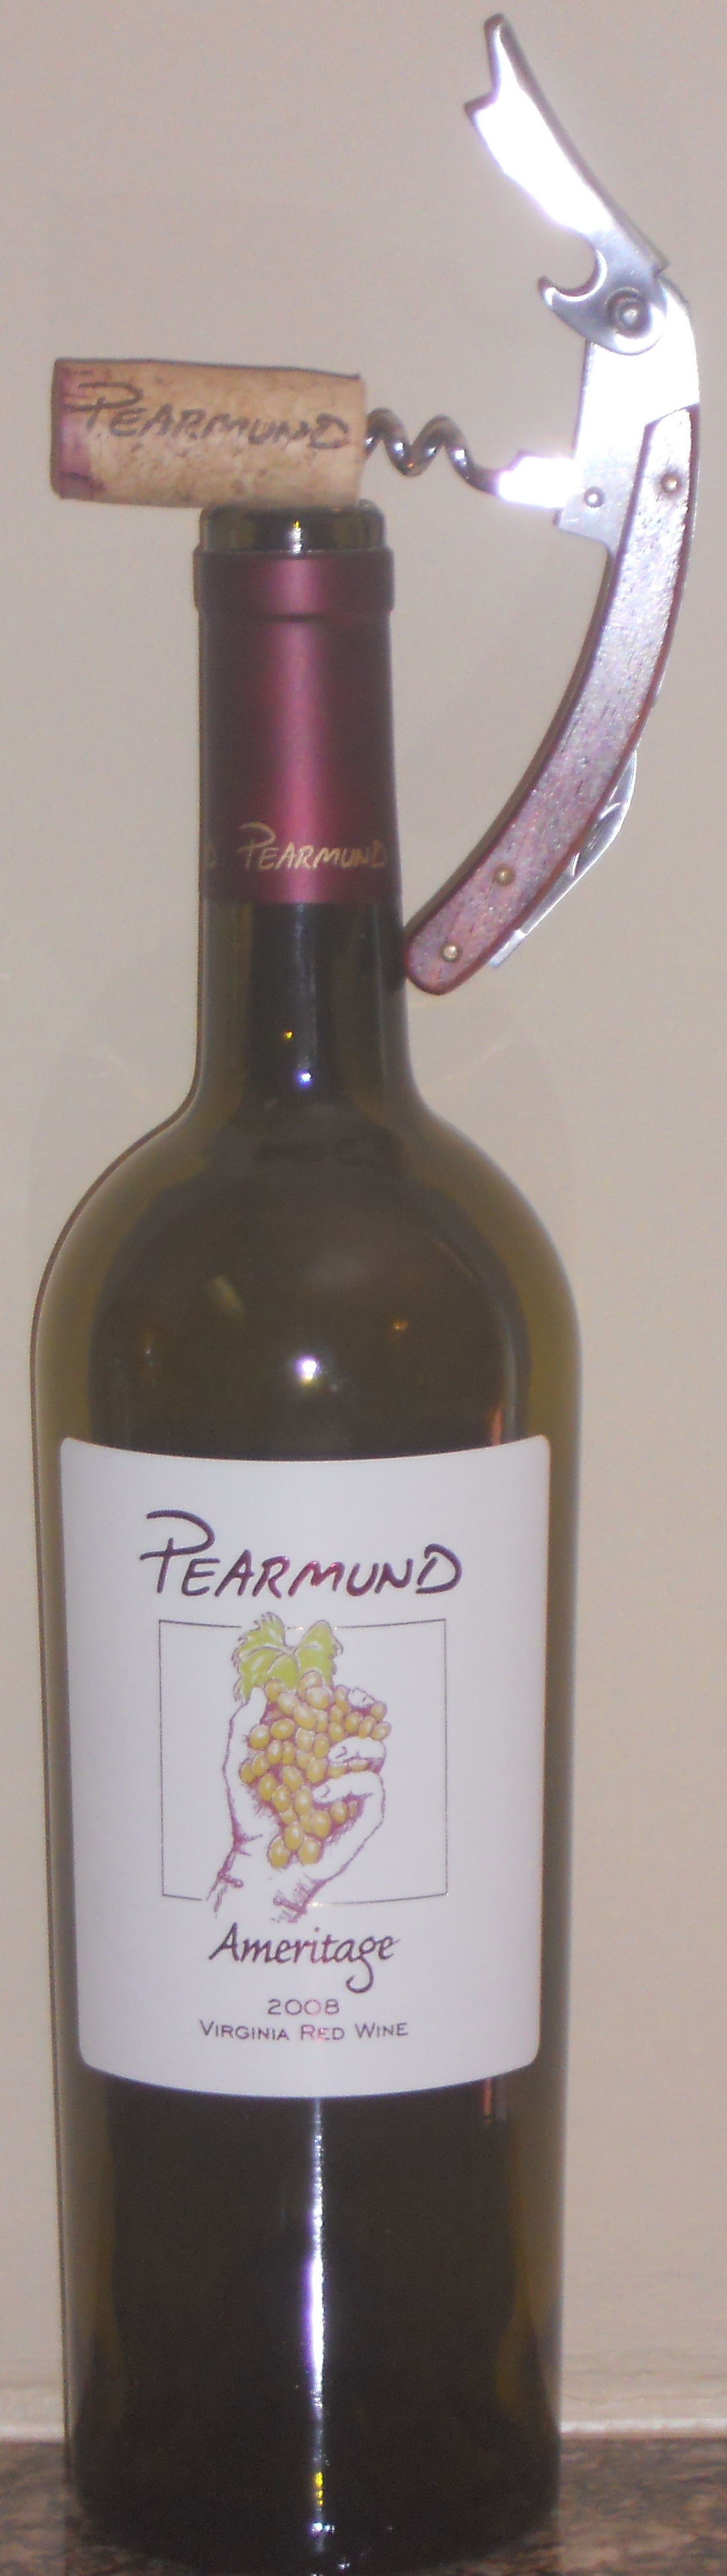 2008 Pearmund Cellars Ameritage, Broad Run, Virginia (Northern Region)